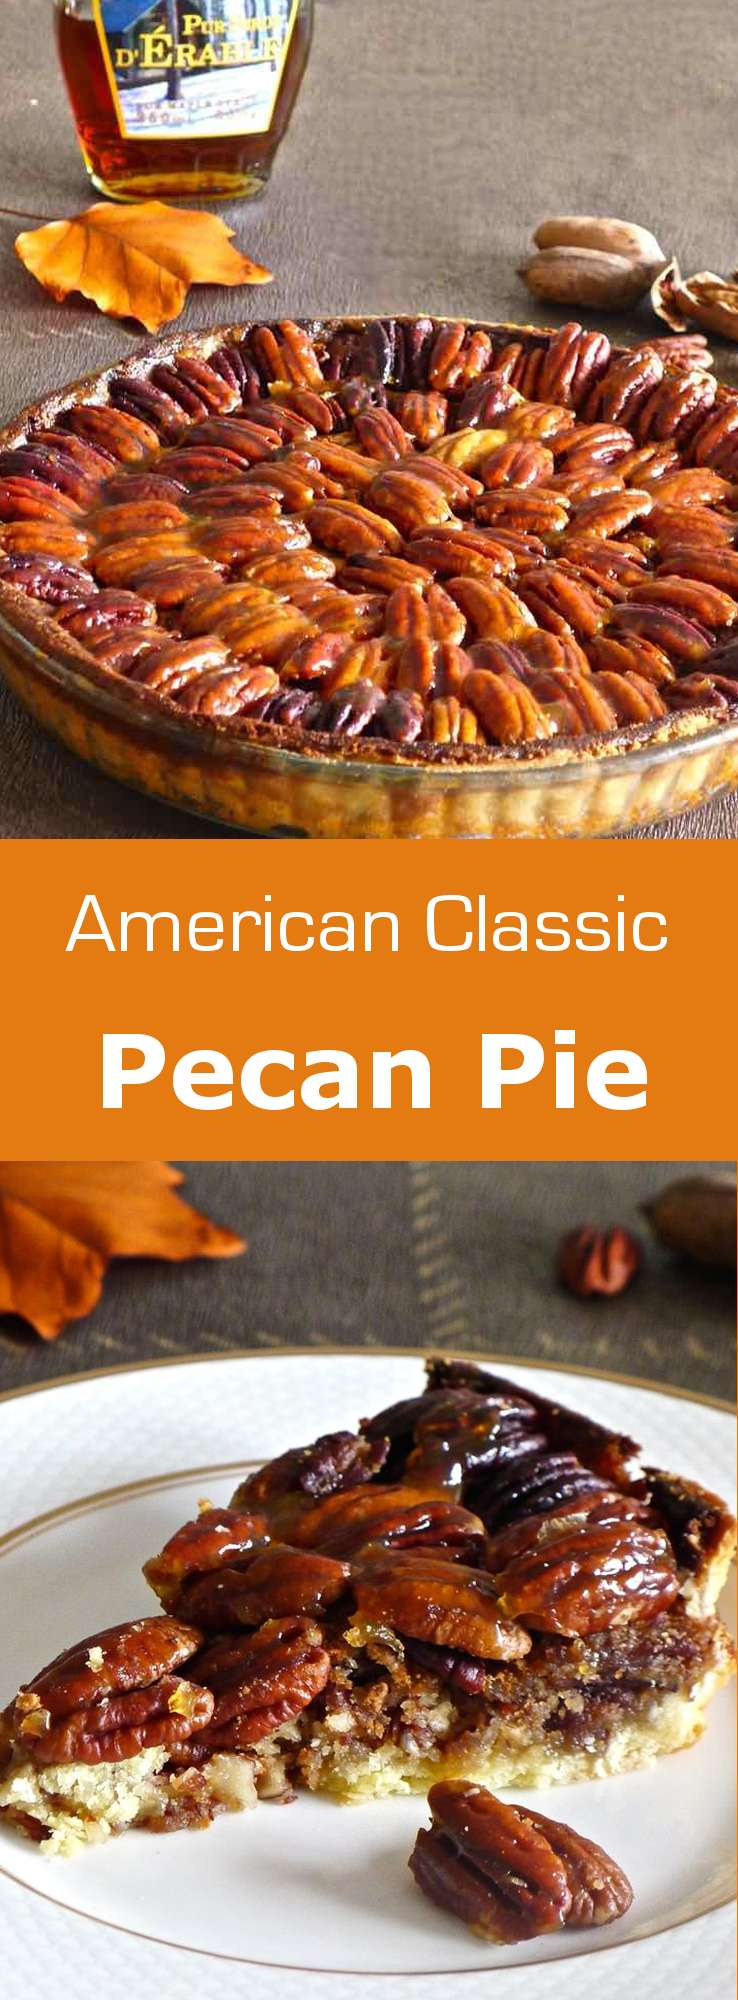 Some attribute the origin of pecan pie to Louisiana, while others claim the recipe was entirely invented by Karo to promote their corn syrup. #dessert #pie #american #thanksgiving #196flavors